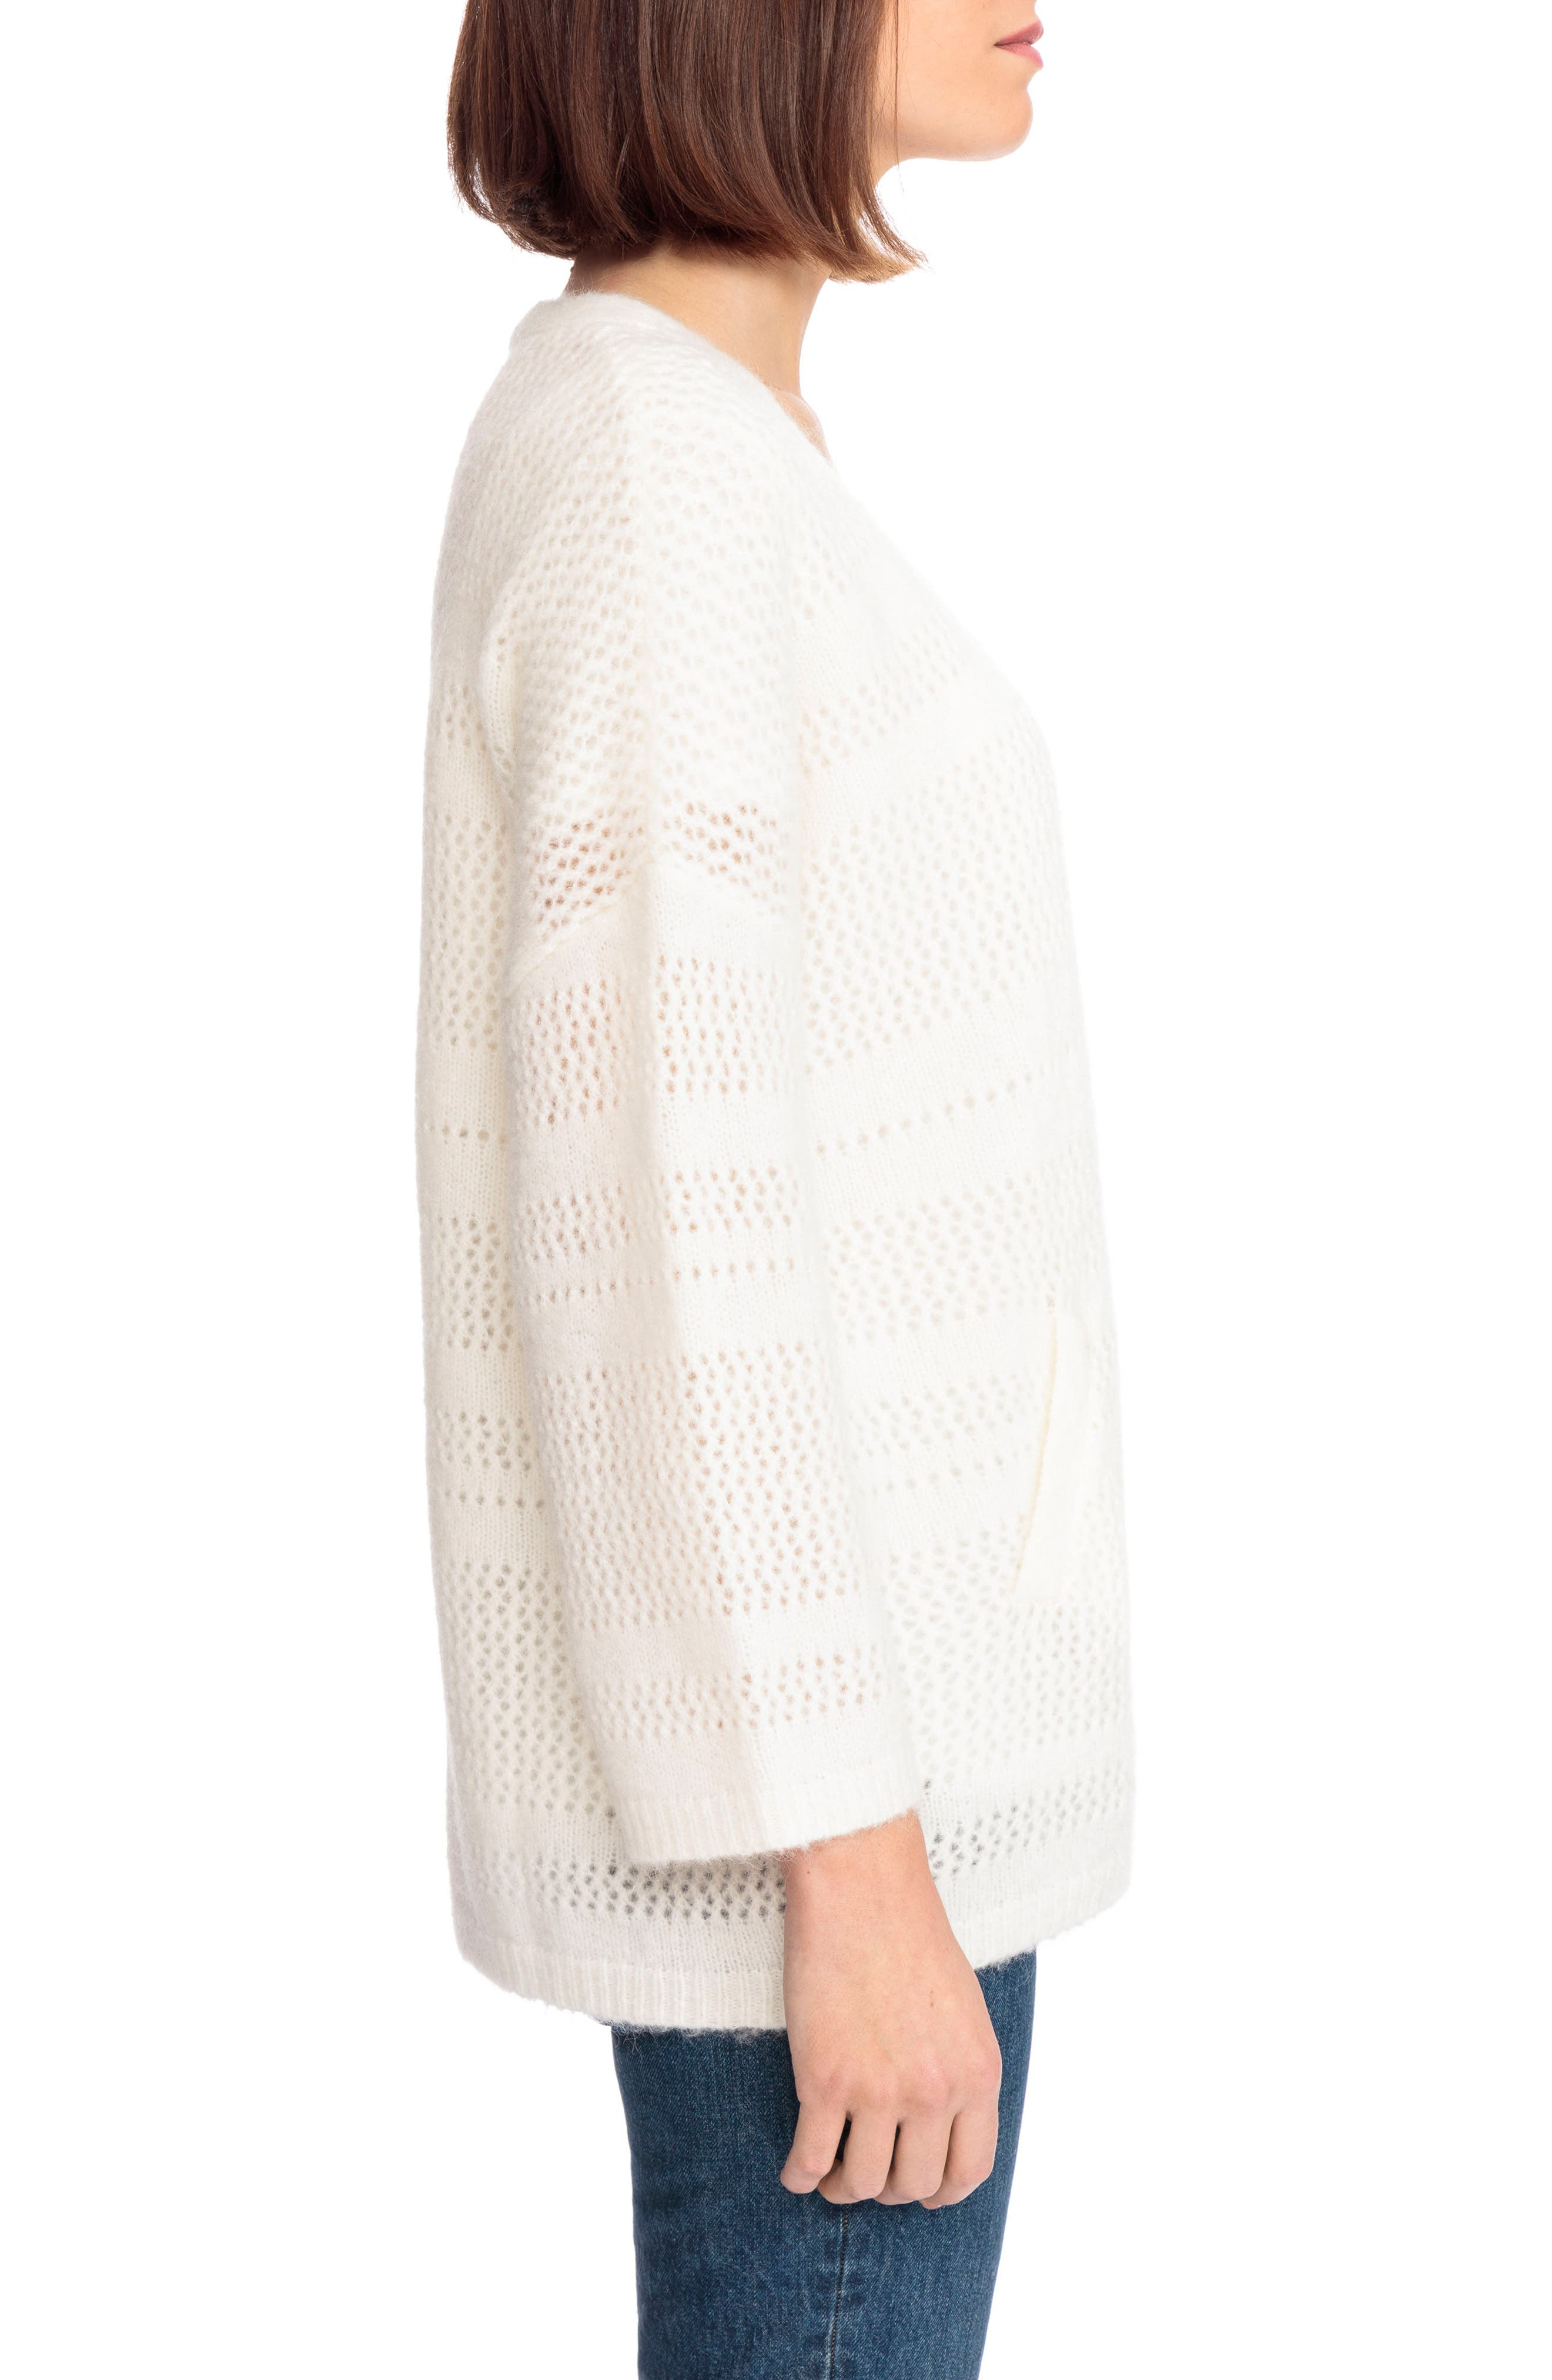 Firmin Cardigan,                             Alternate thumbnail 4, color,                             Off White